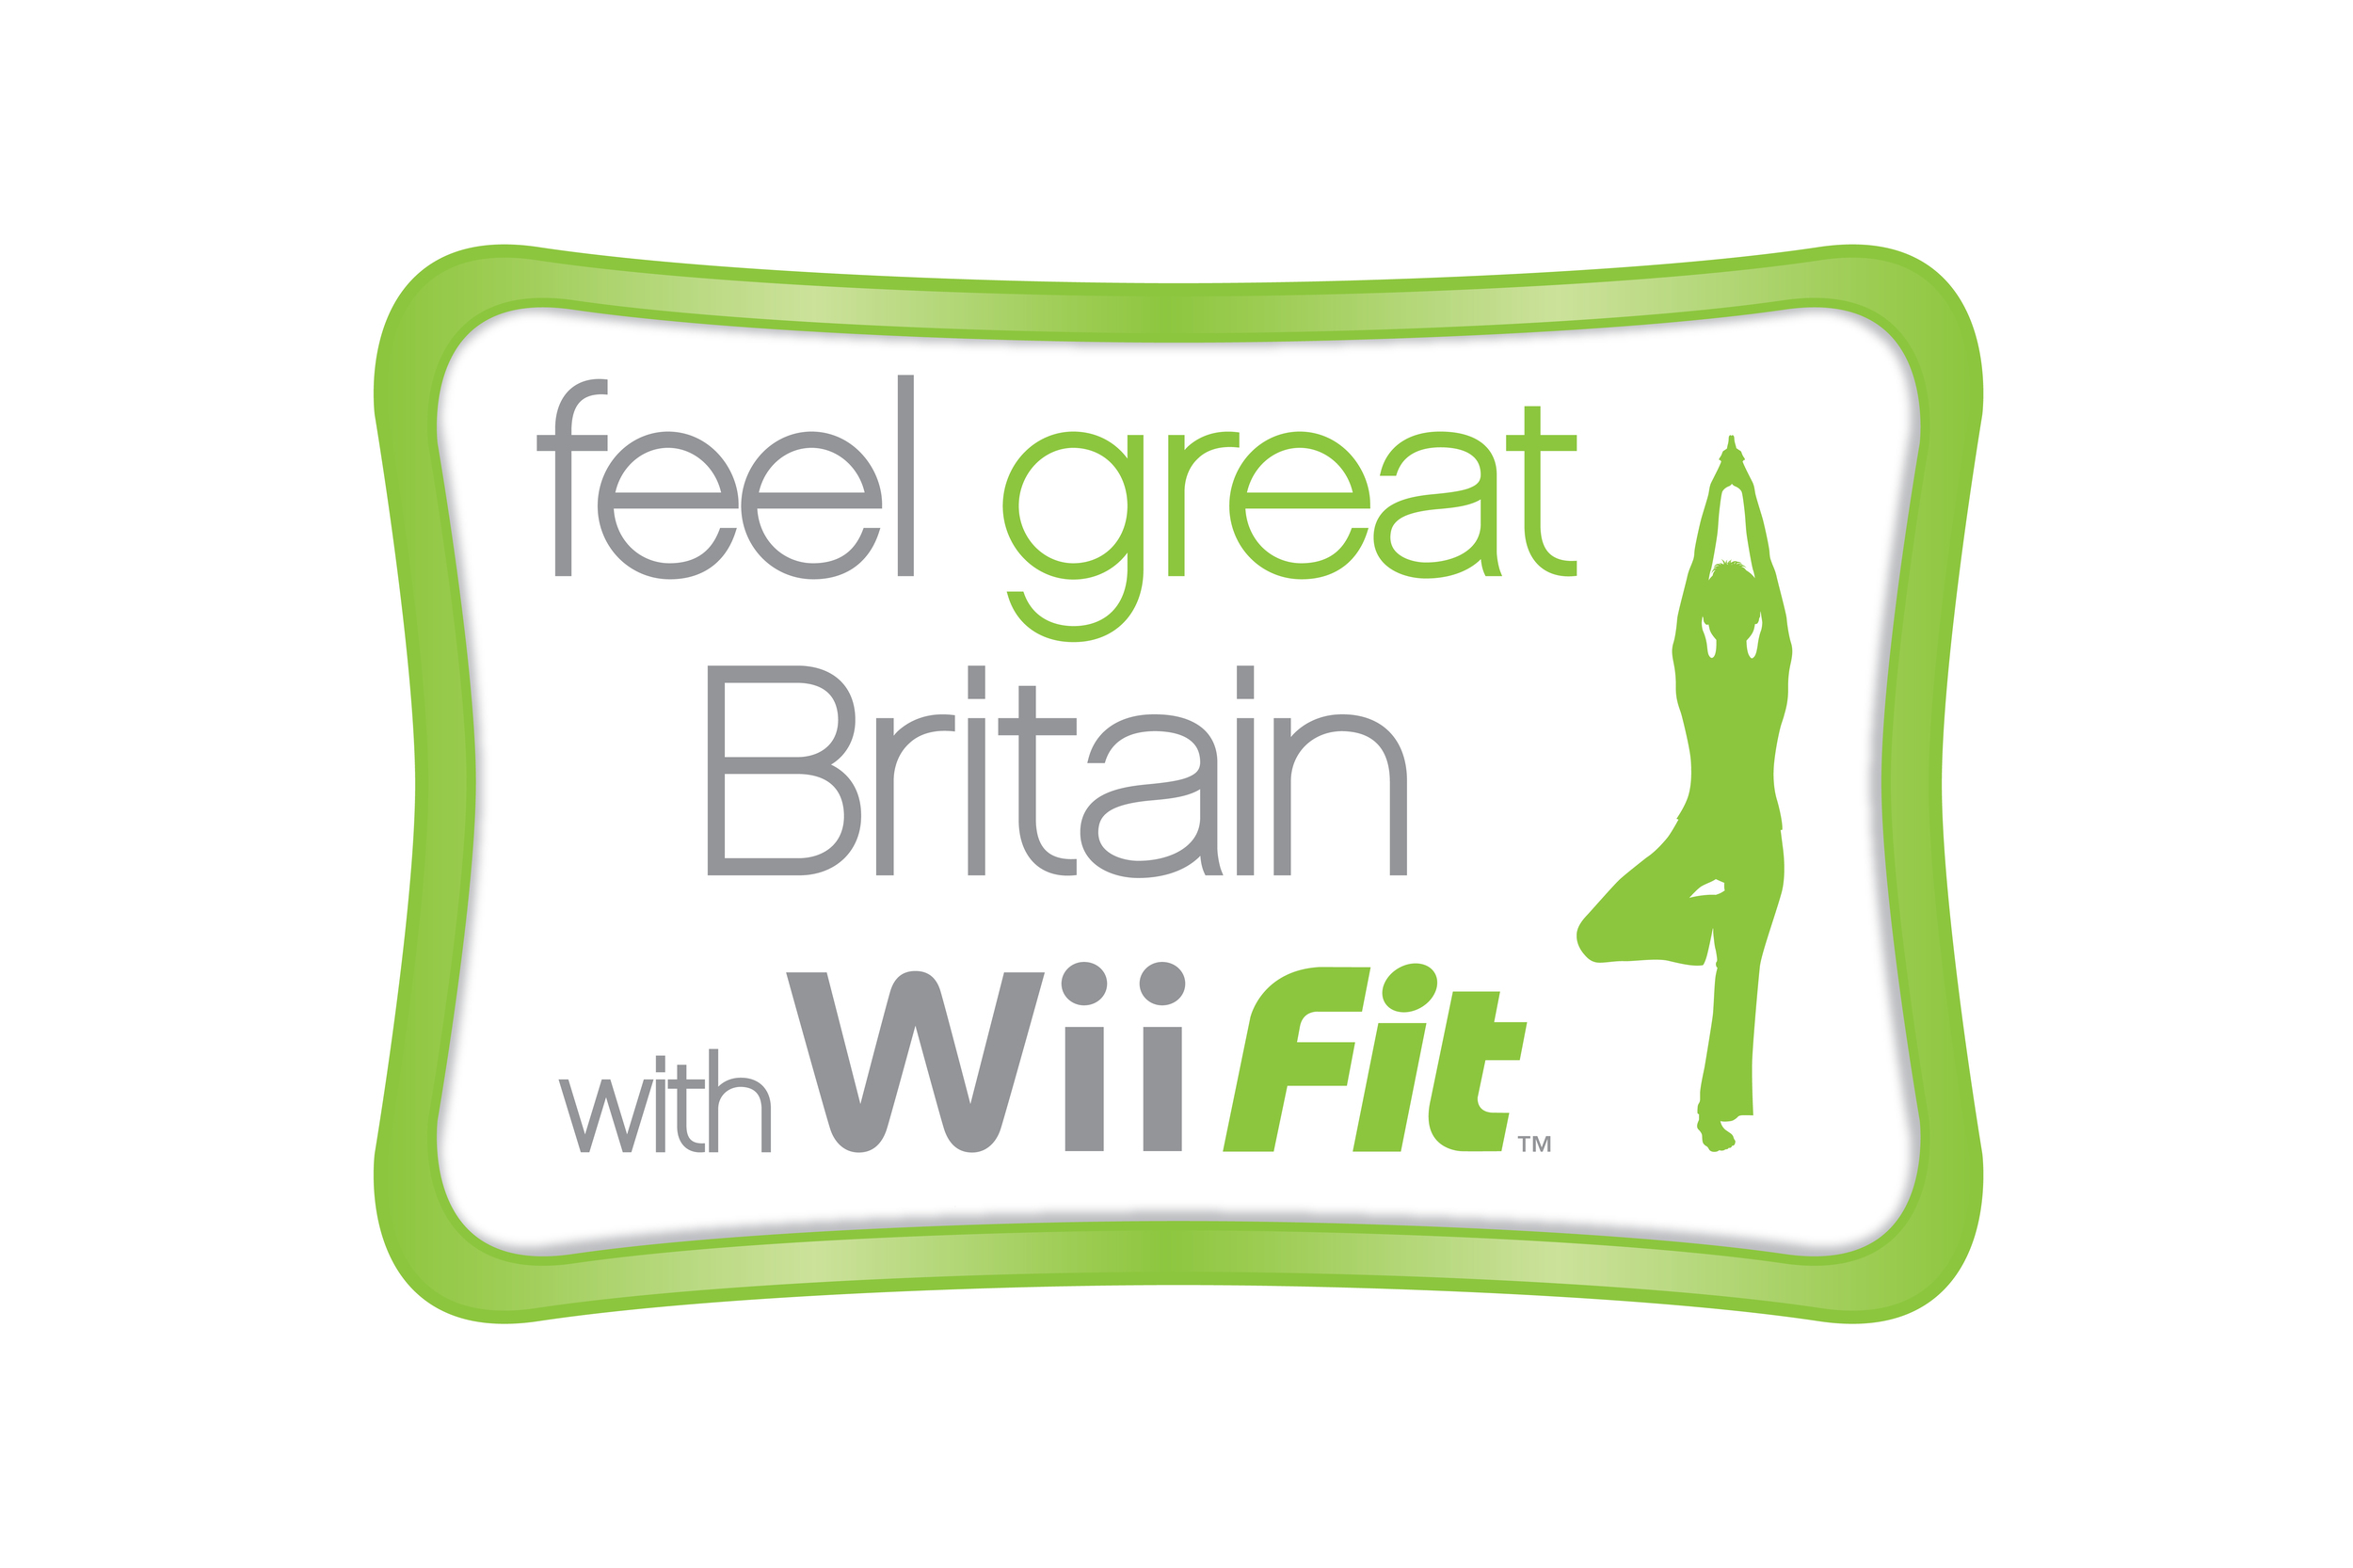 WiiFit_feel_great_Britain_RGB.jpg